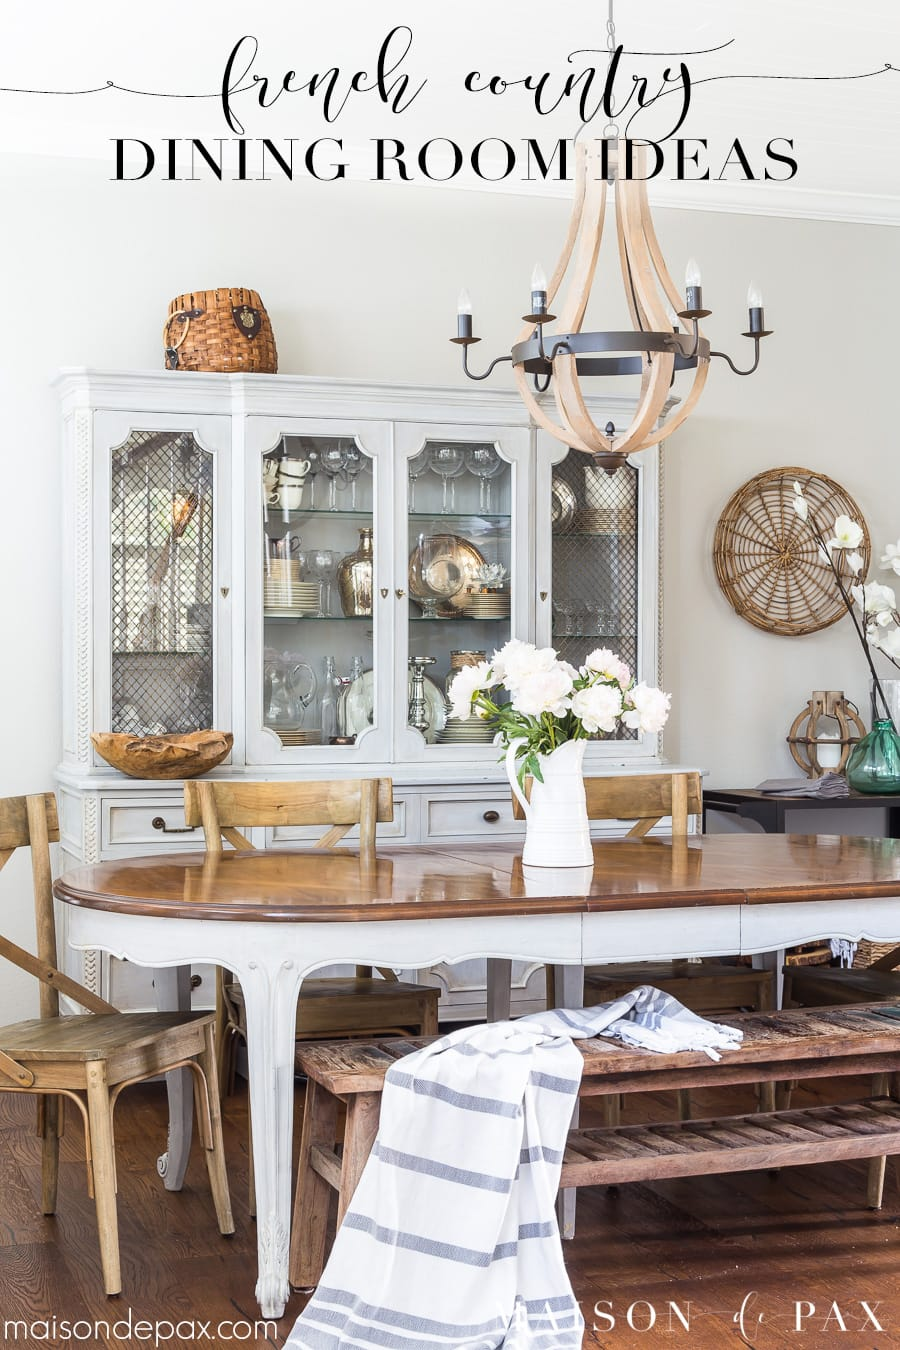 French Country dining room ideas- Maison de Pax